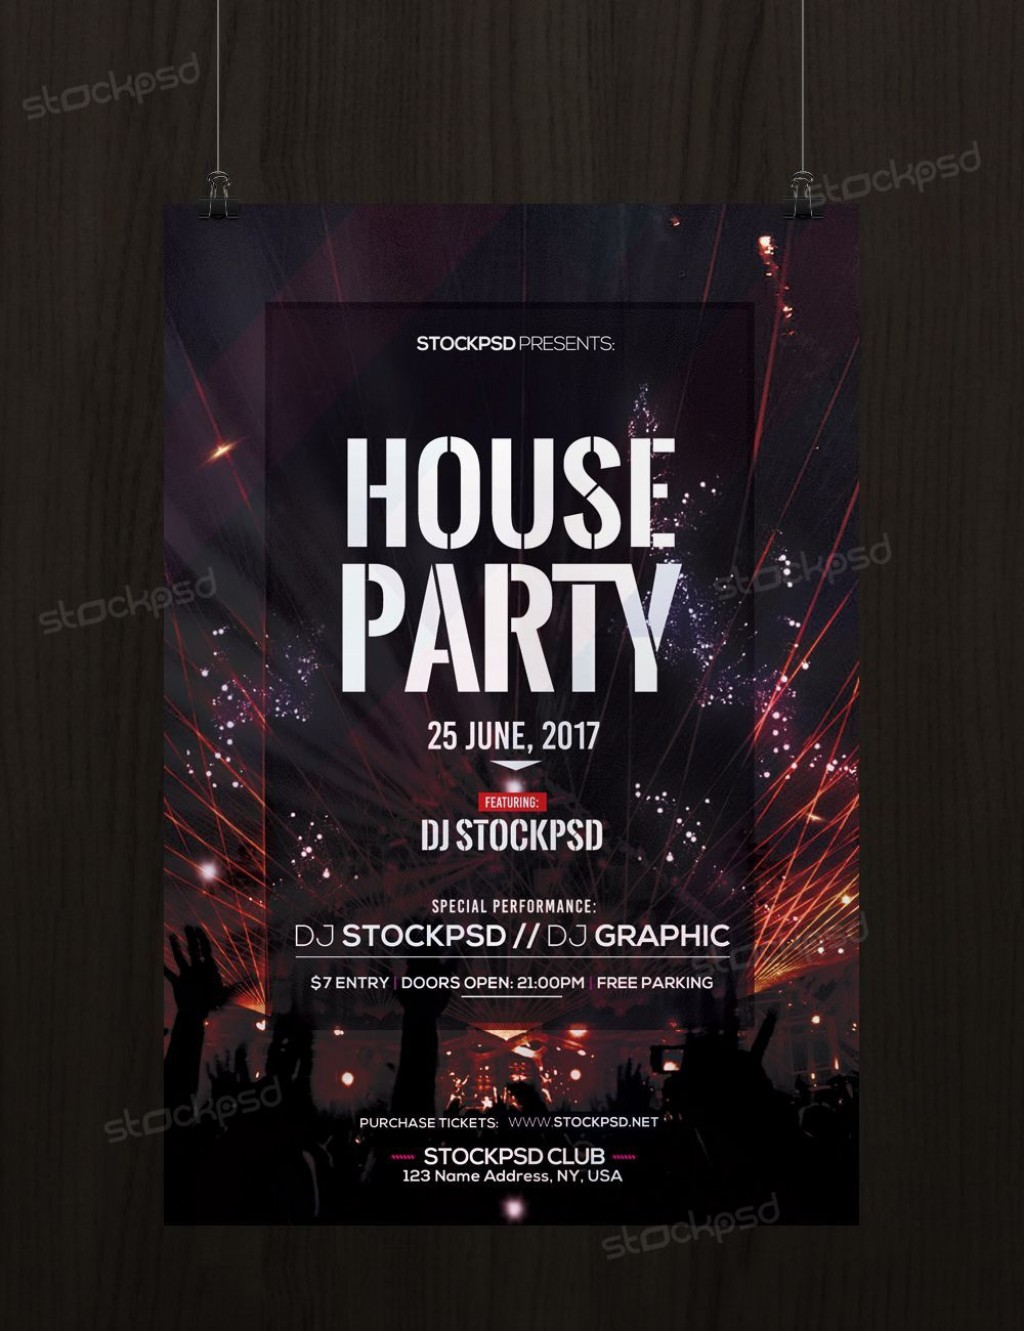 002 Excellent Free Psd Party Flyer Template Download Idea  - Neon Glow RaveLarge